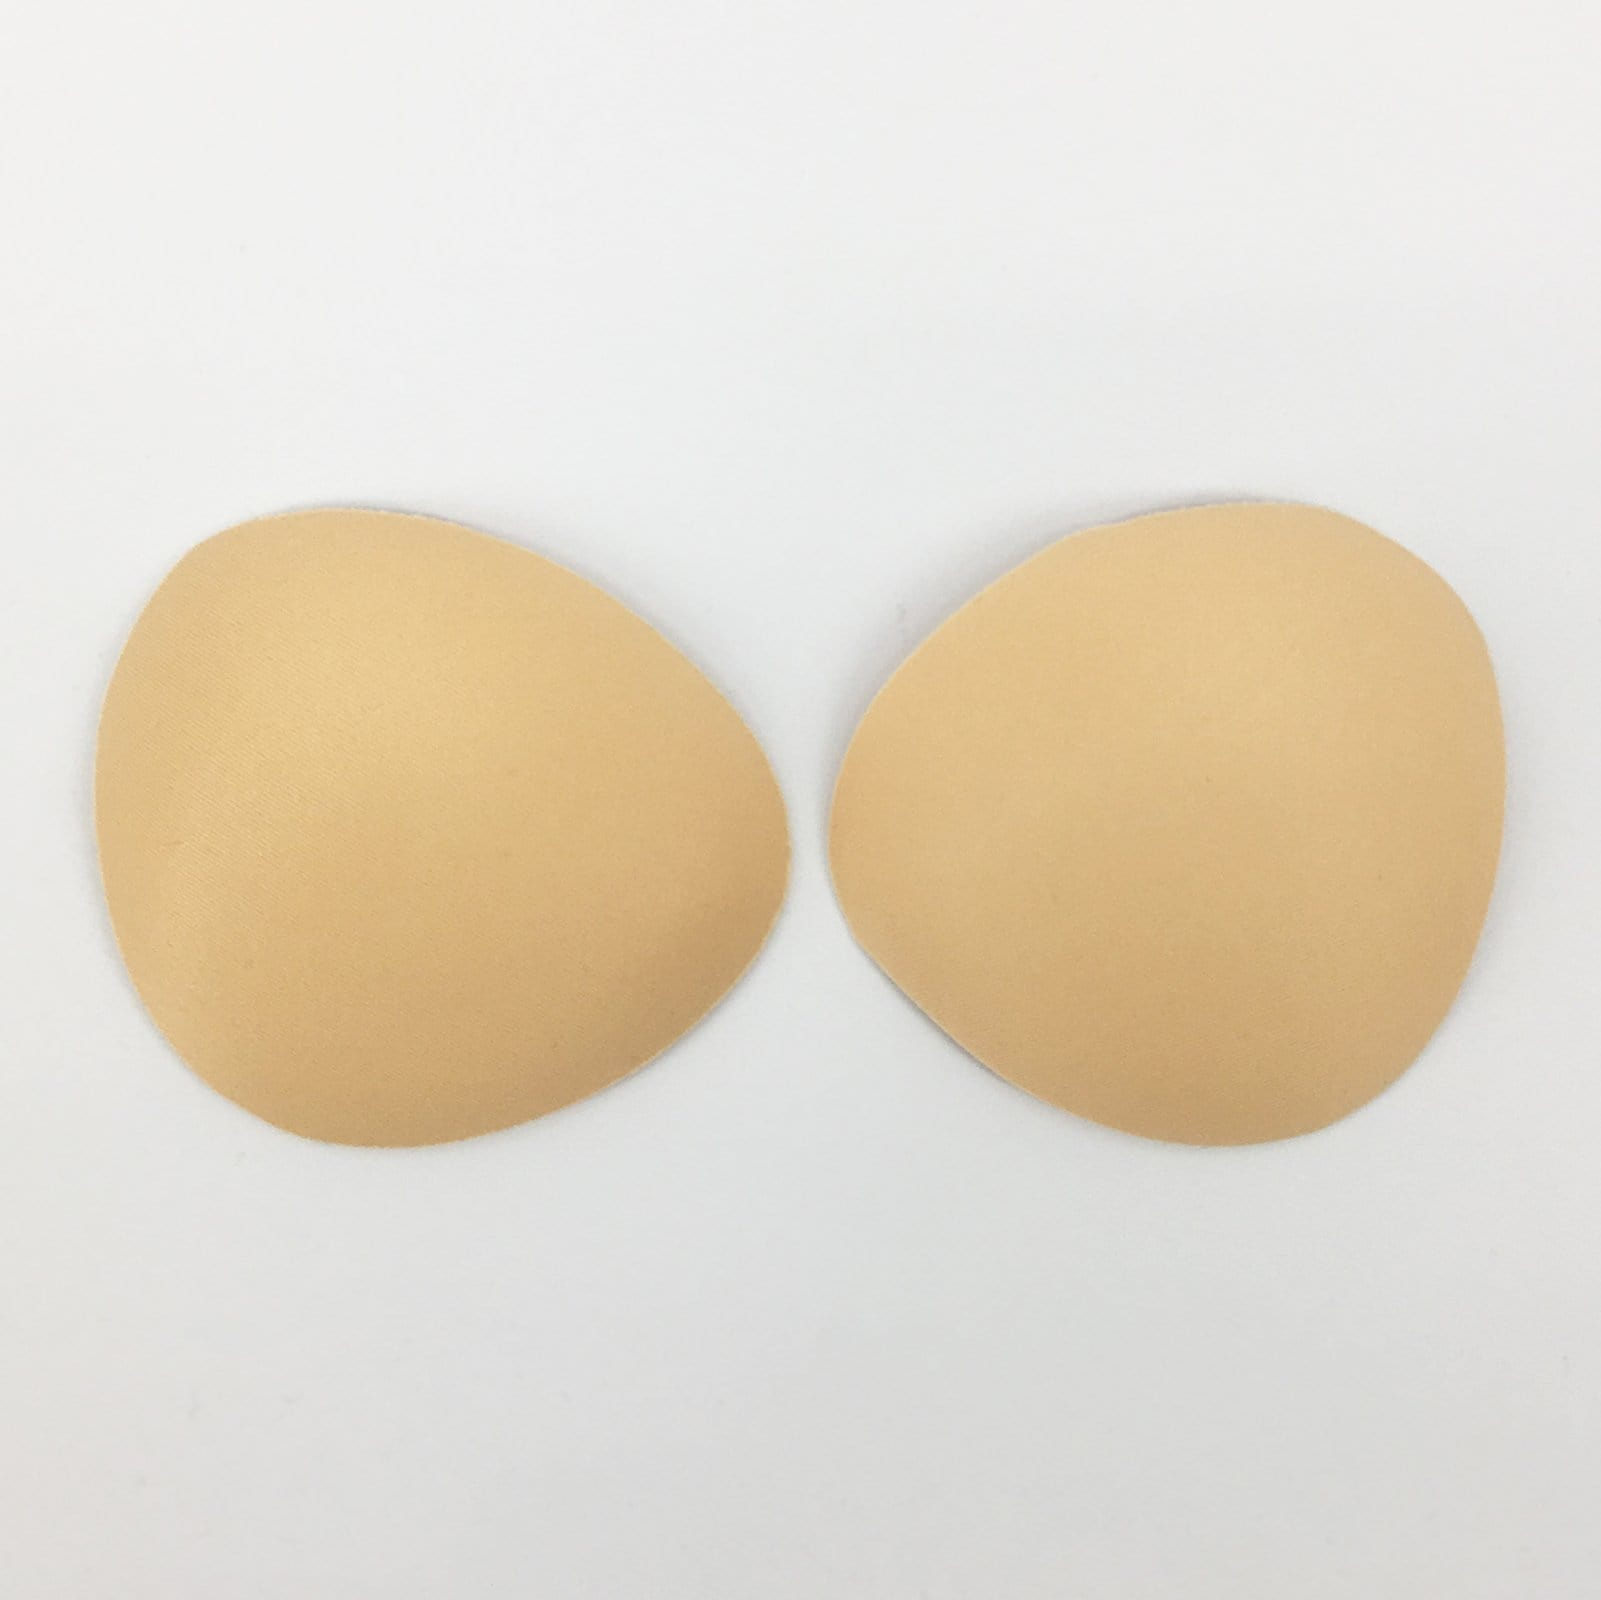 FUNFIT Small Push-Up Bra Padding Inserts In Nude